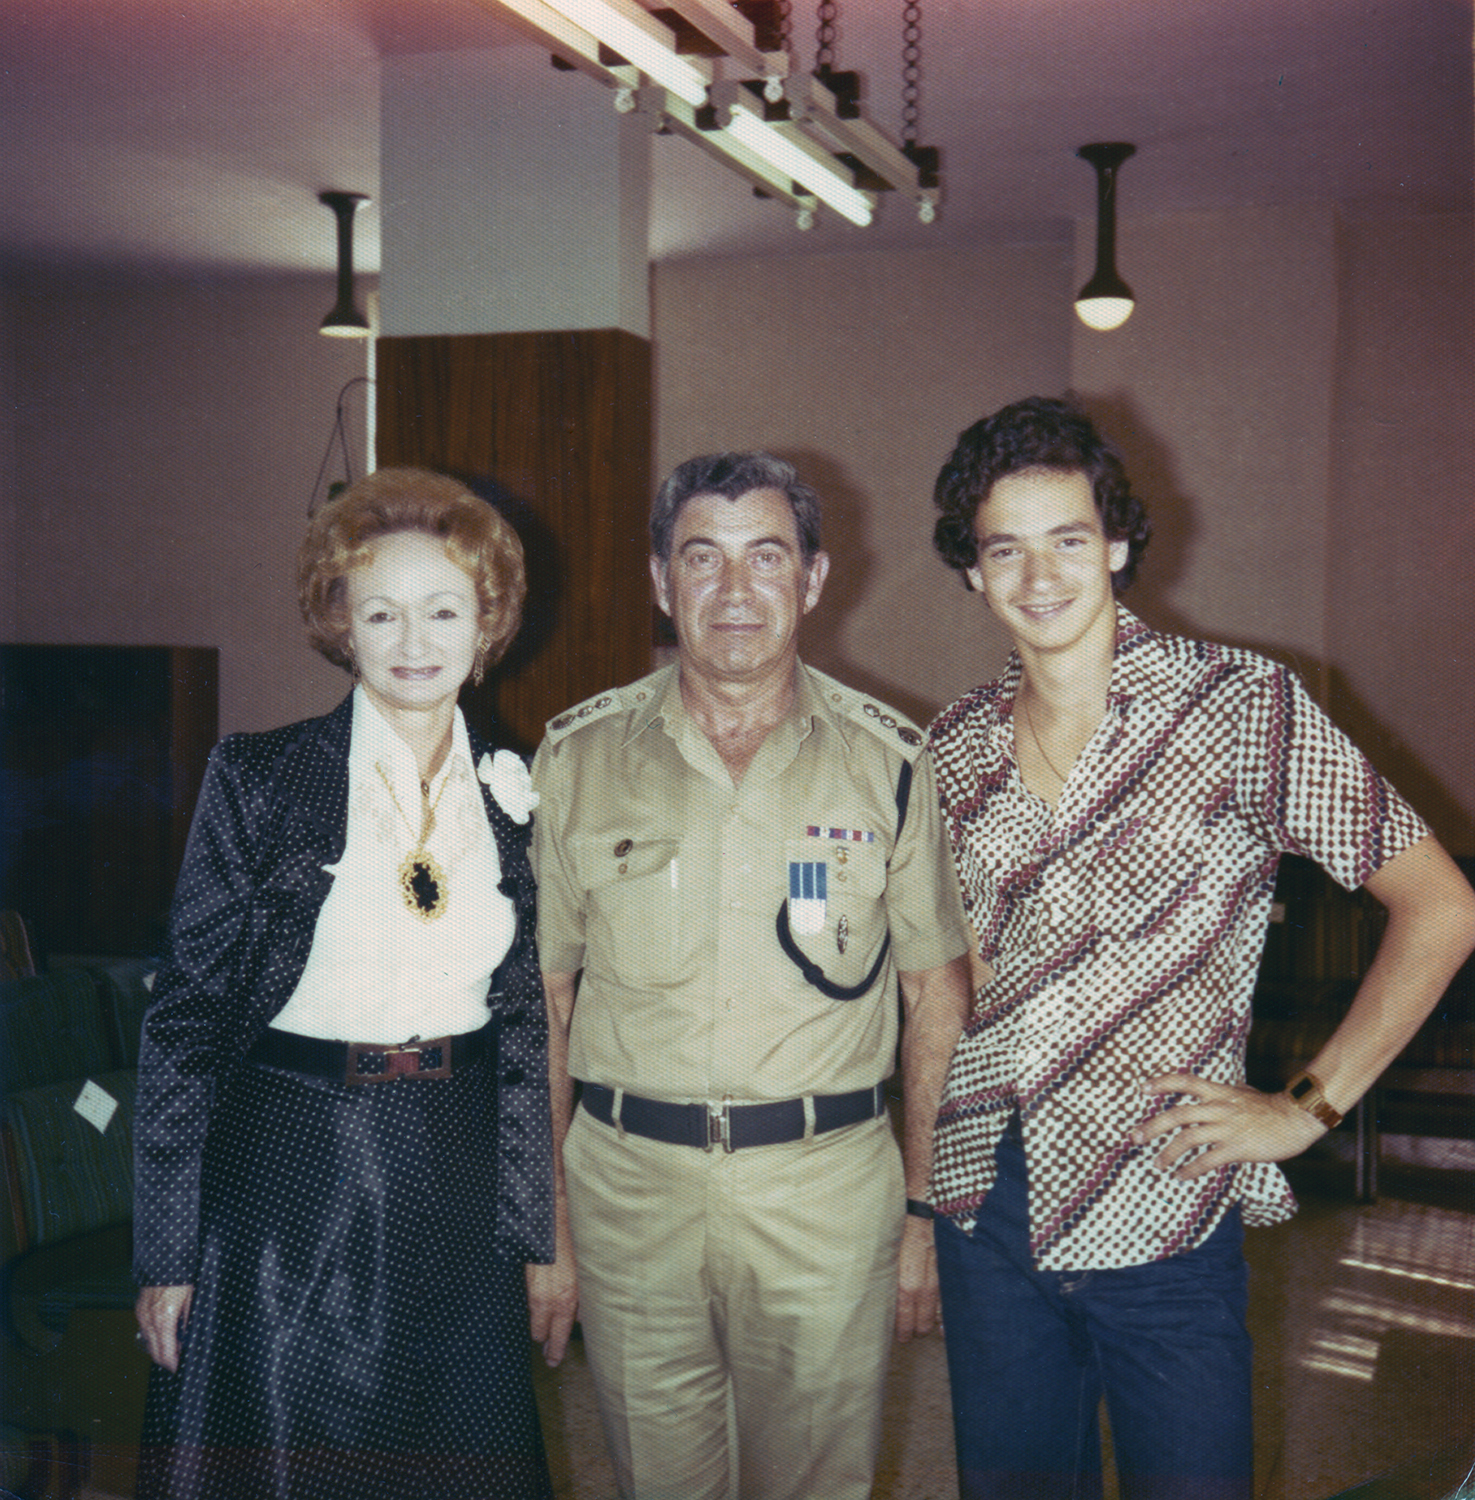 Yagel with son and wife, Israel